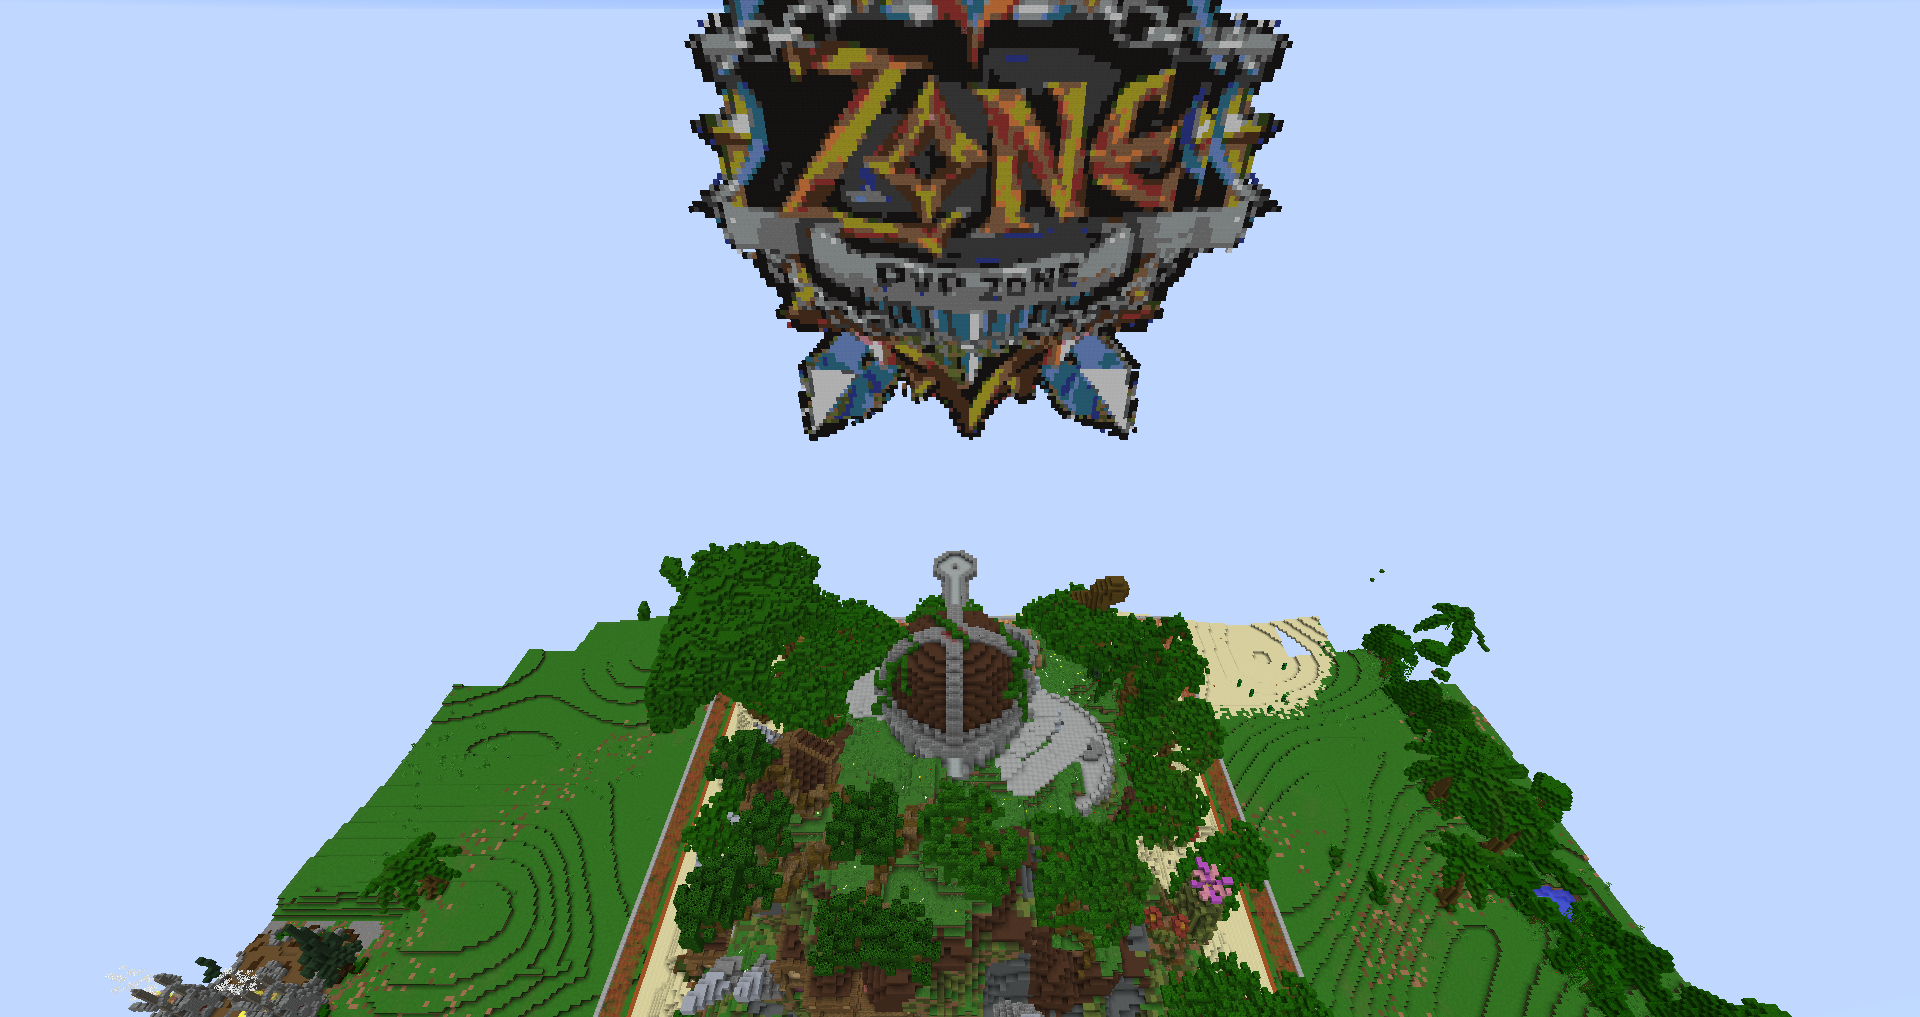 👑 PVP-ZONE 👑 An Upcoming Factions PvP Server 🔎 Looking